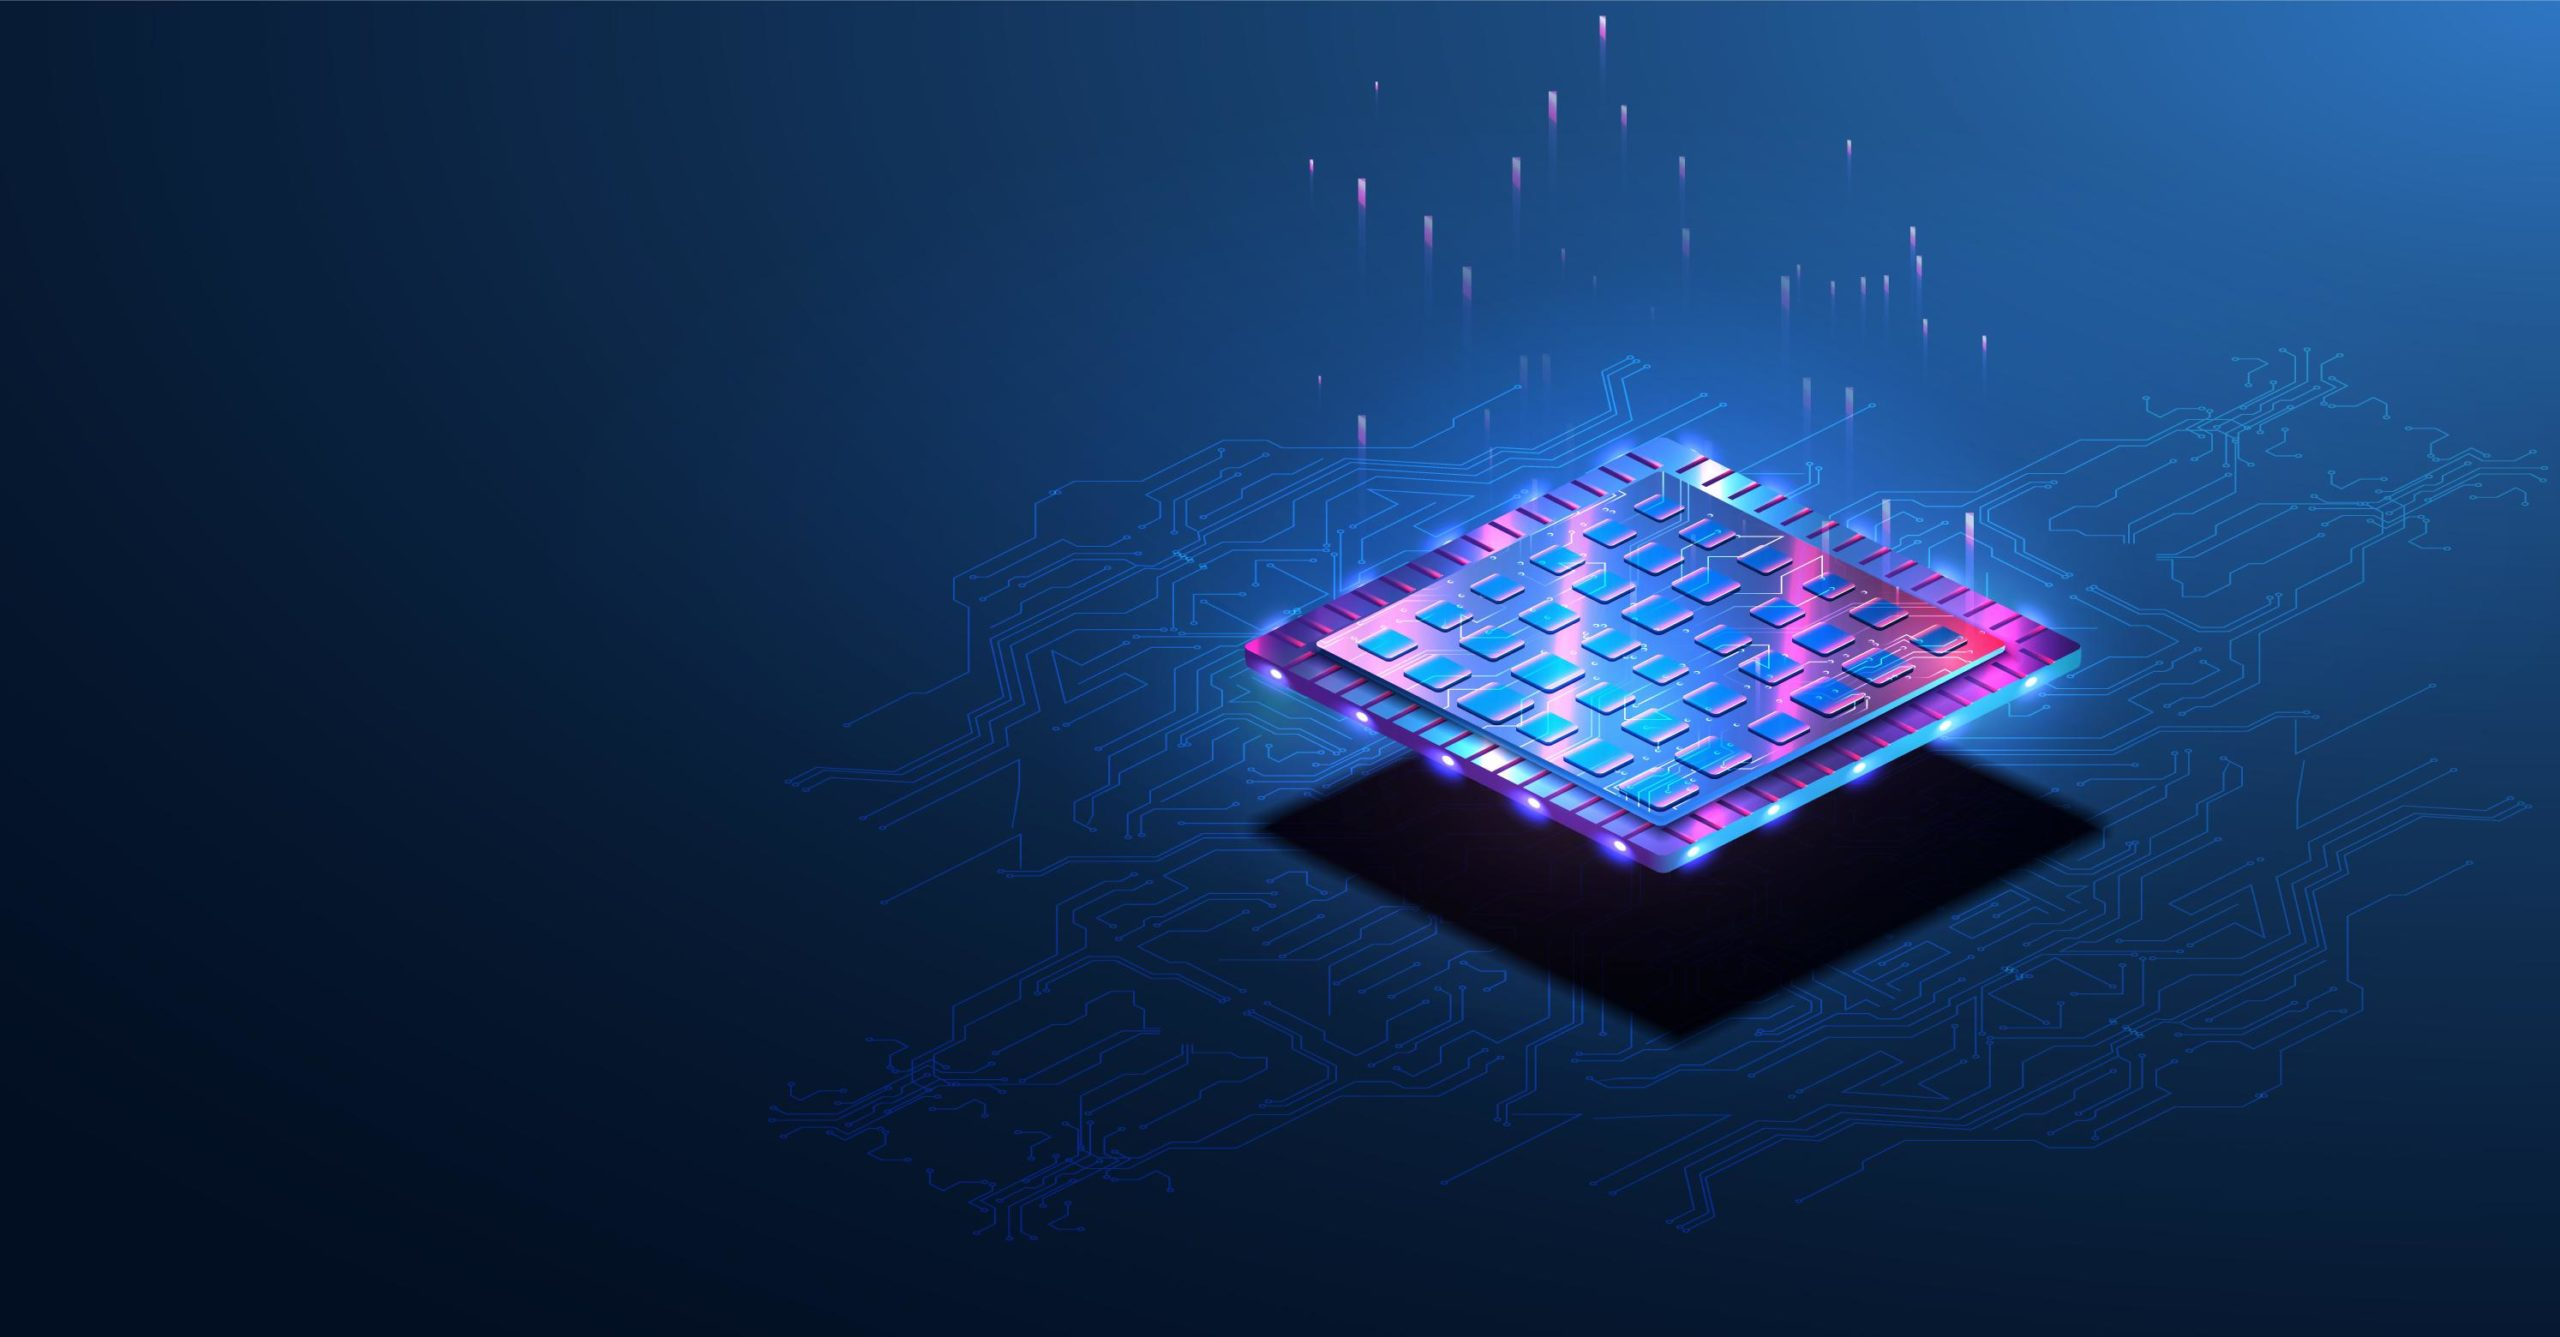 microchip hovering over a blue background